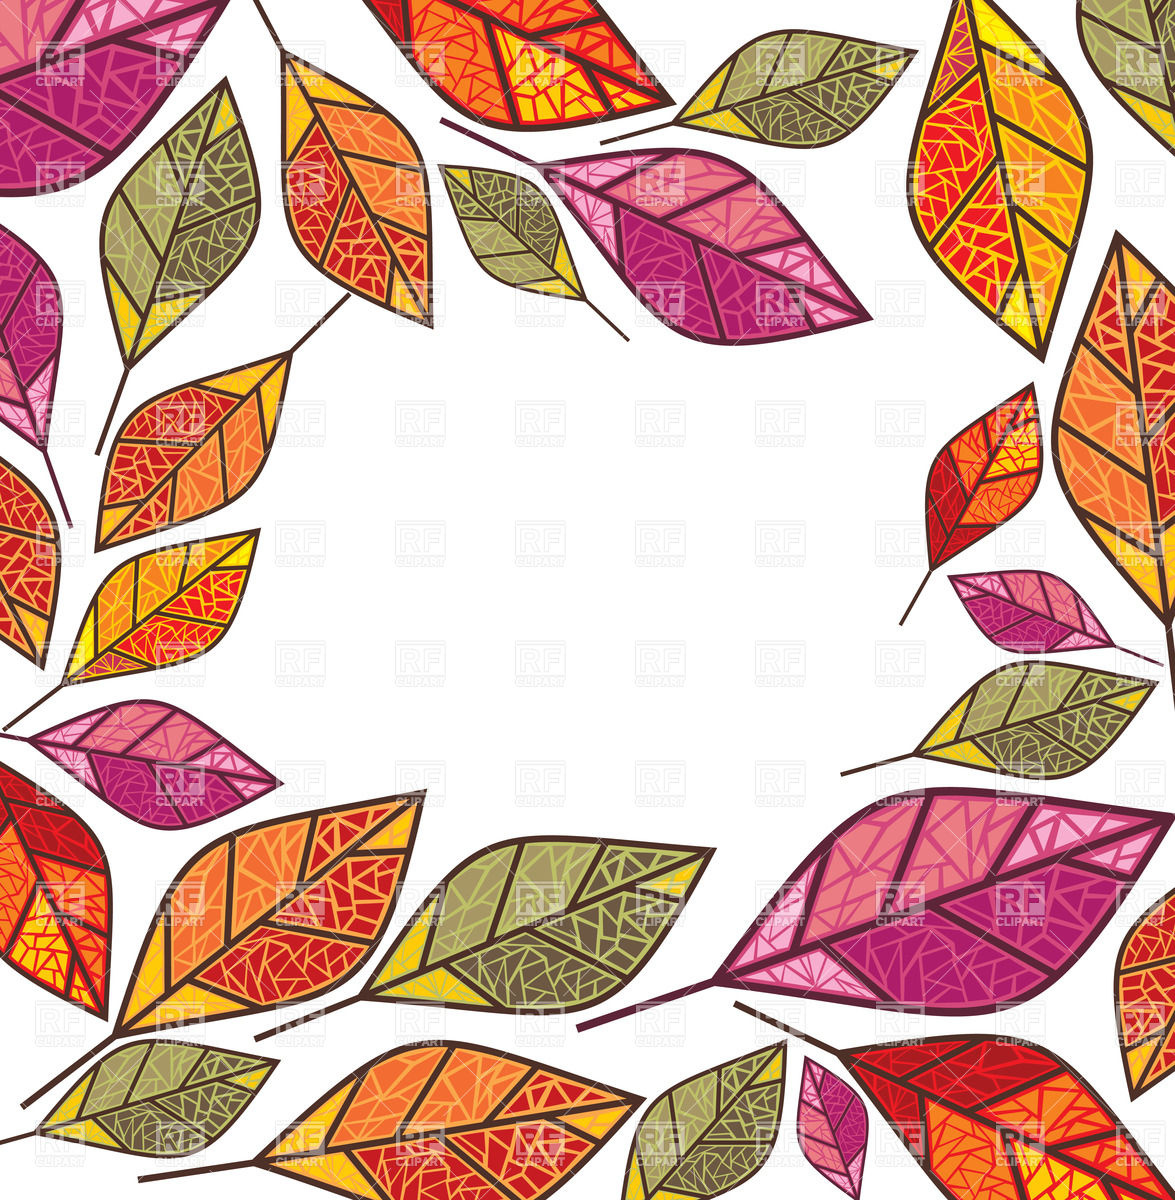 Ornate autumn frame made of dry leaves Vector Image #20377.